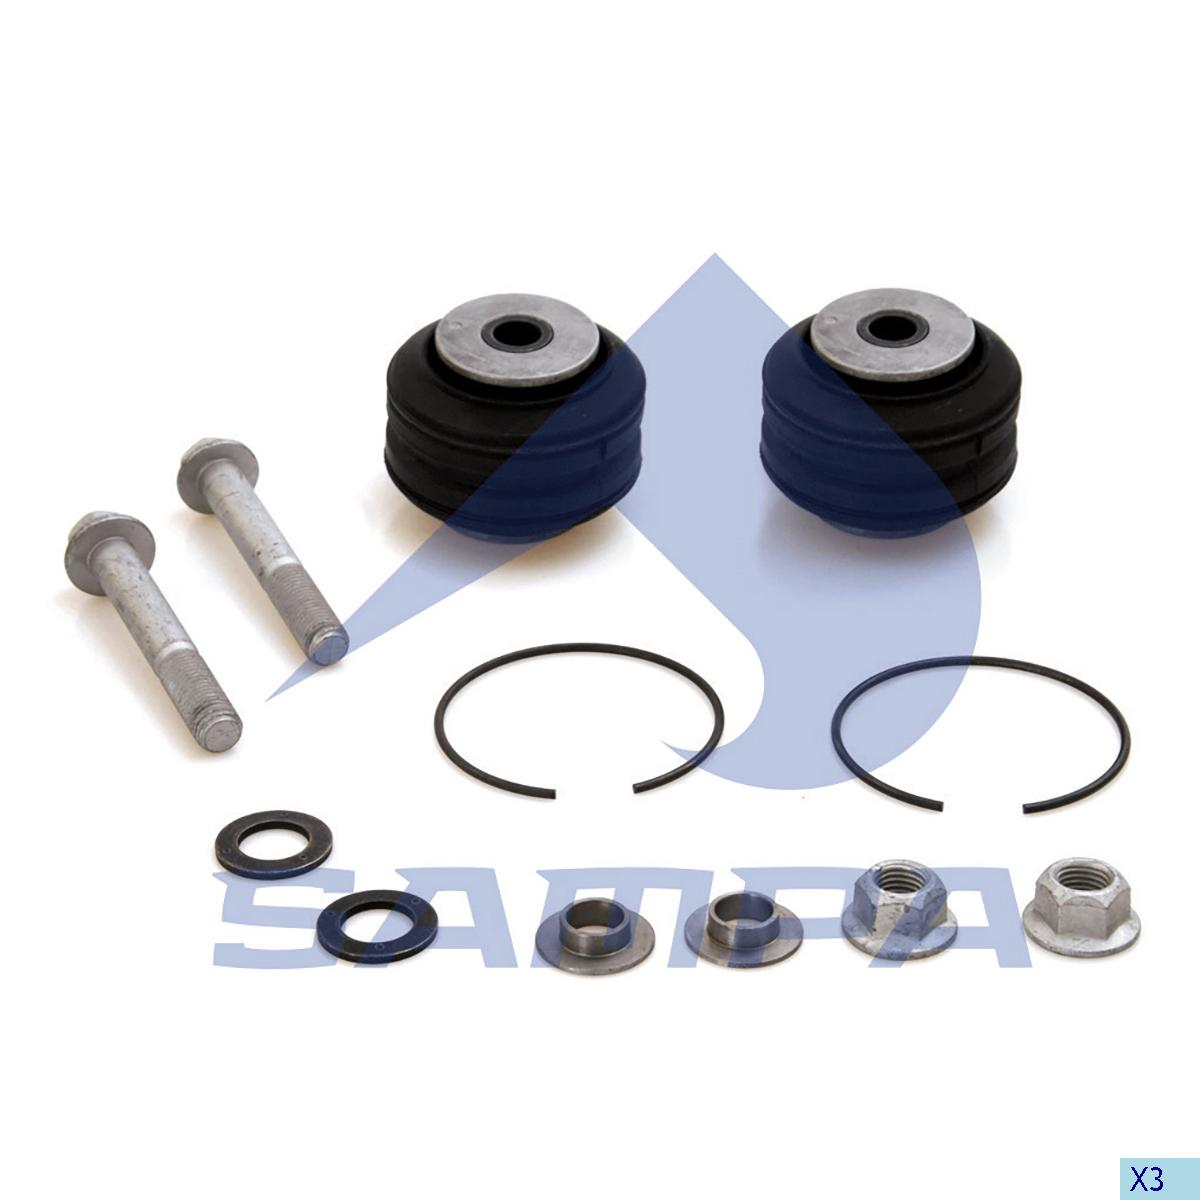 Repair Kit, Cab, Volvo, Cab